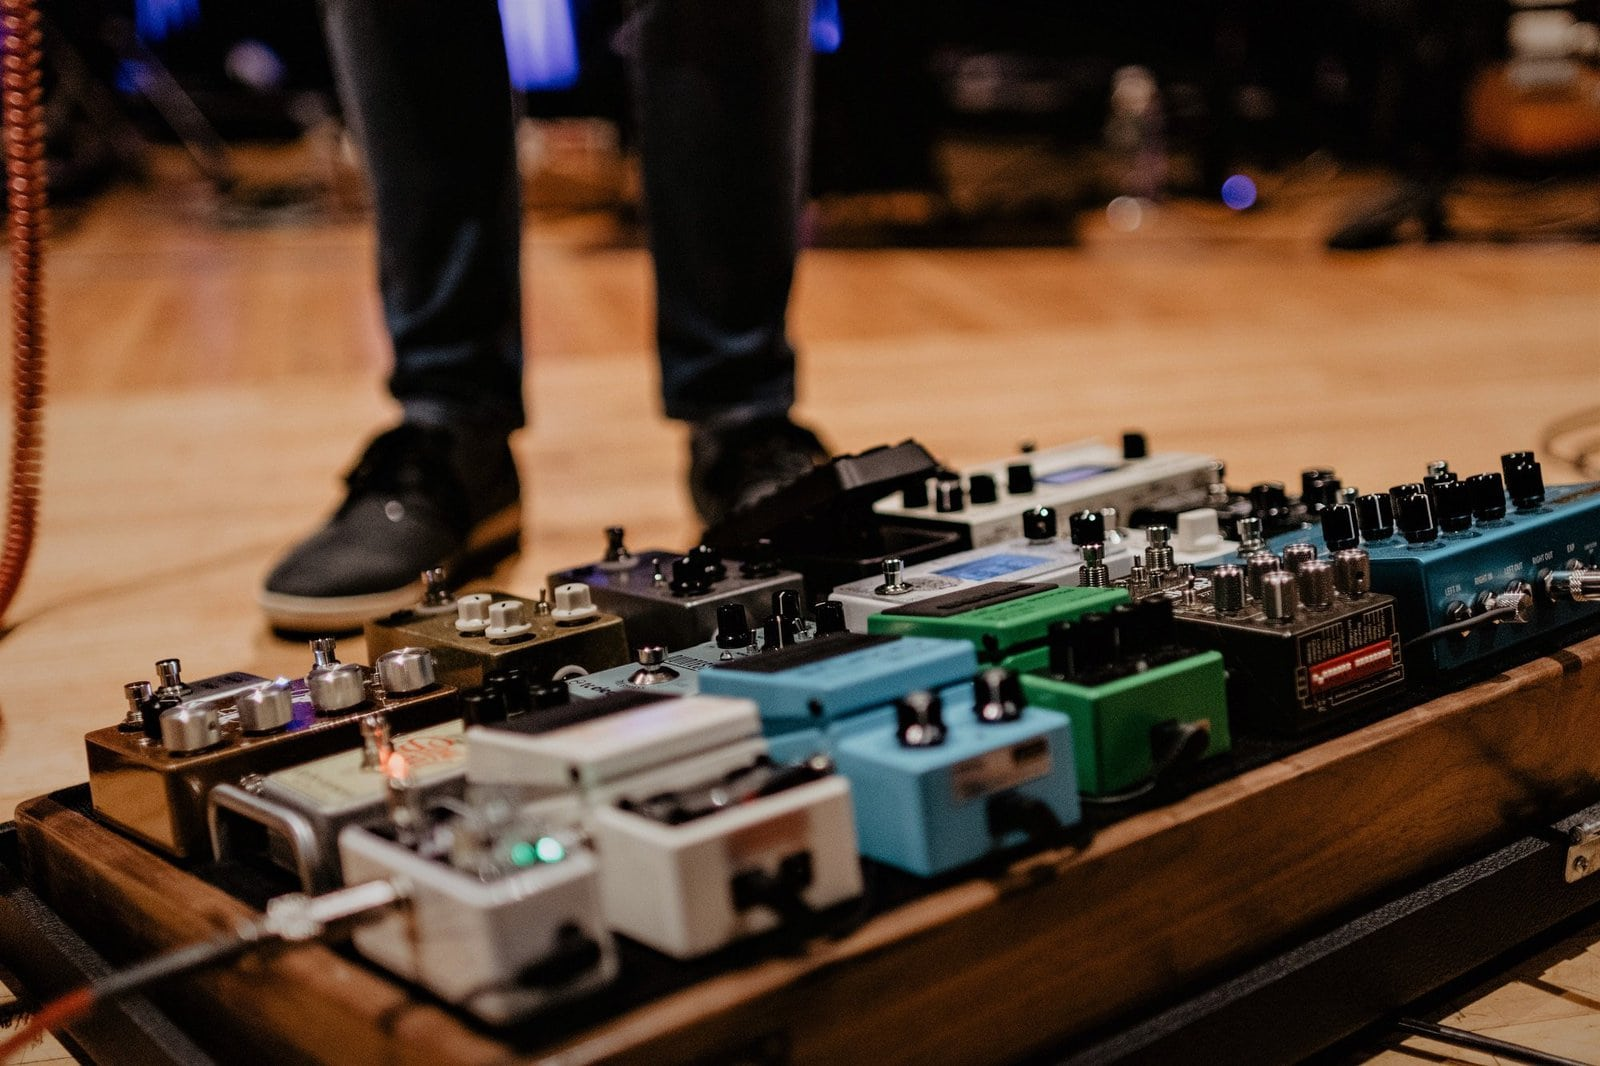 5 Best Bass Fuzz Pedals in 2021 – Buyer's Guide